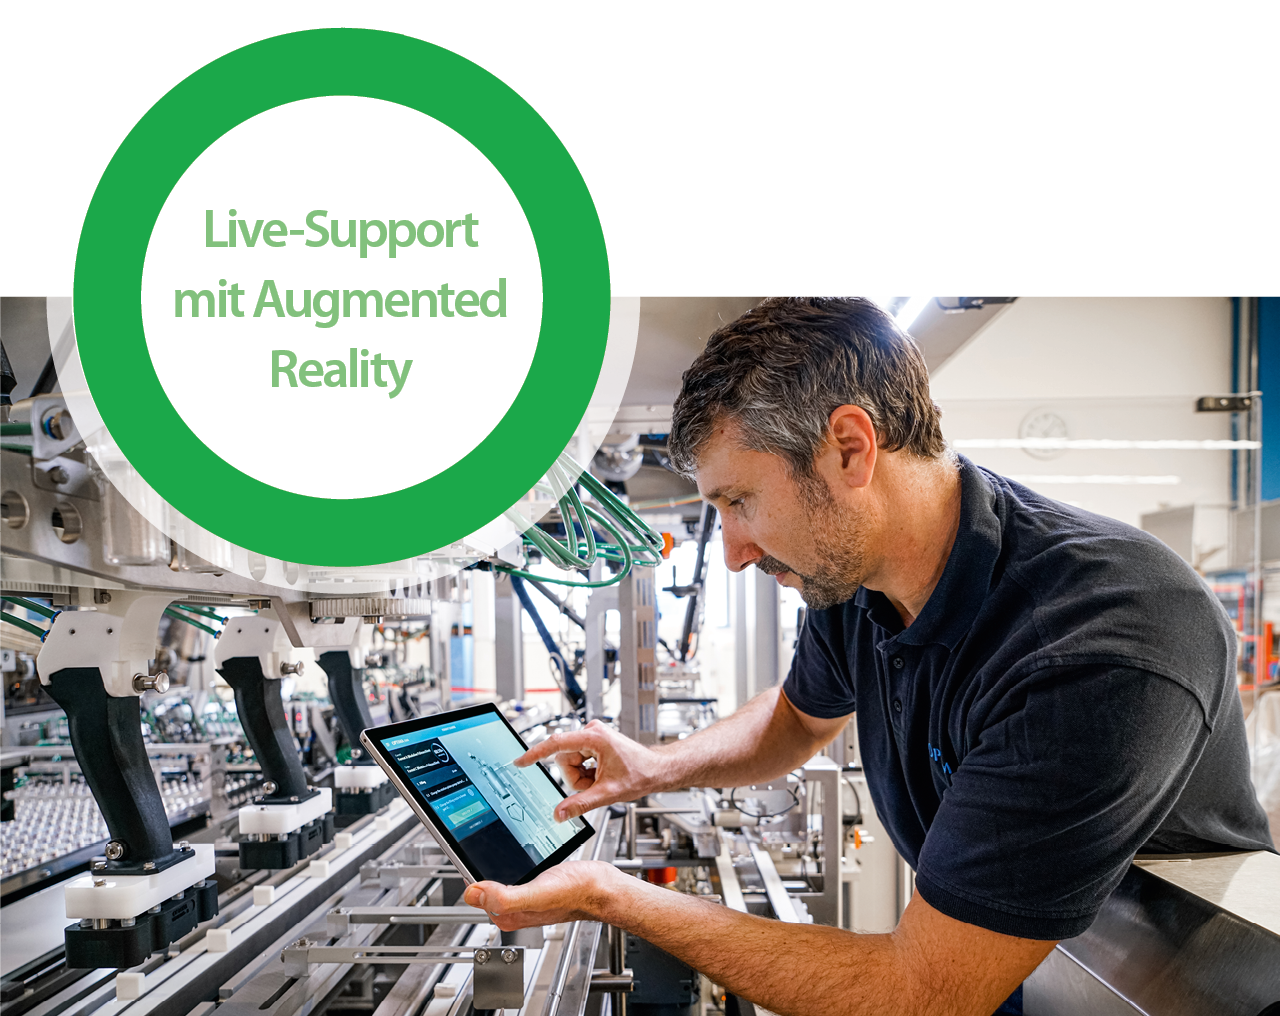 Live-Support mit Augemented Reality (AR)